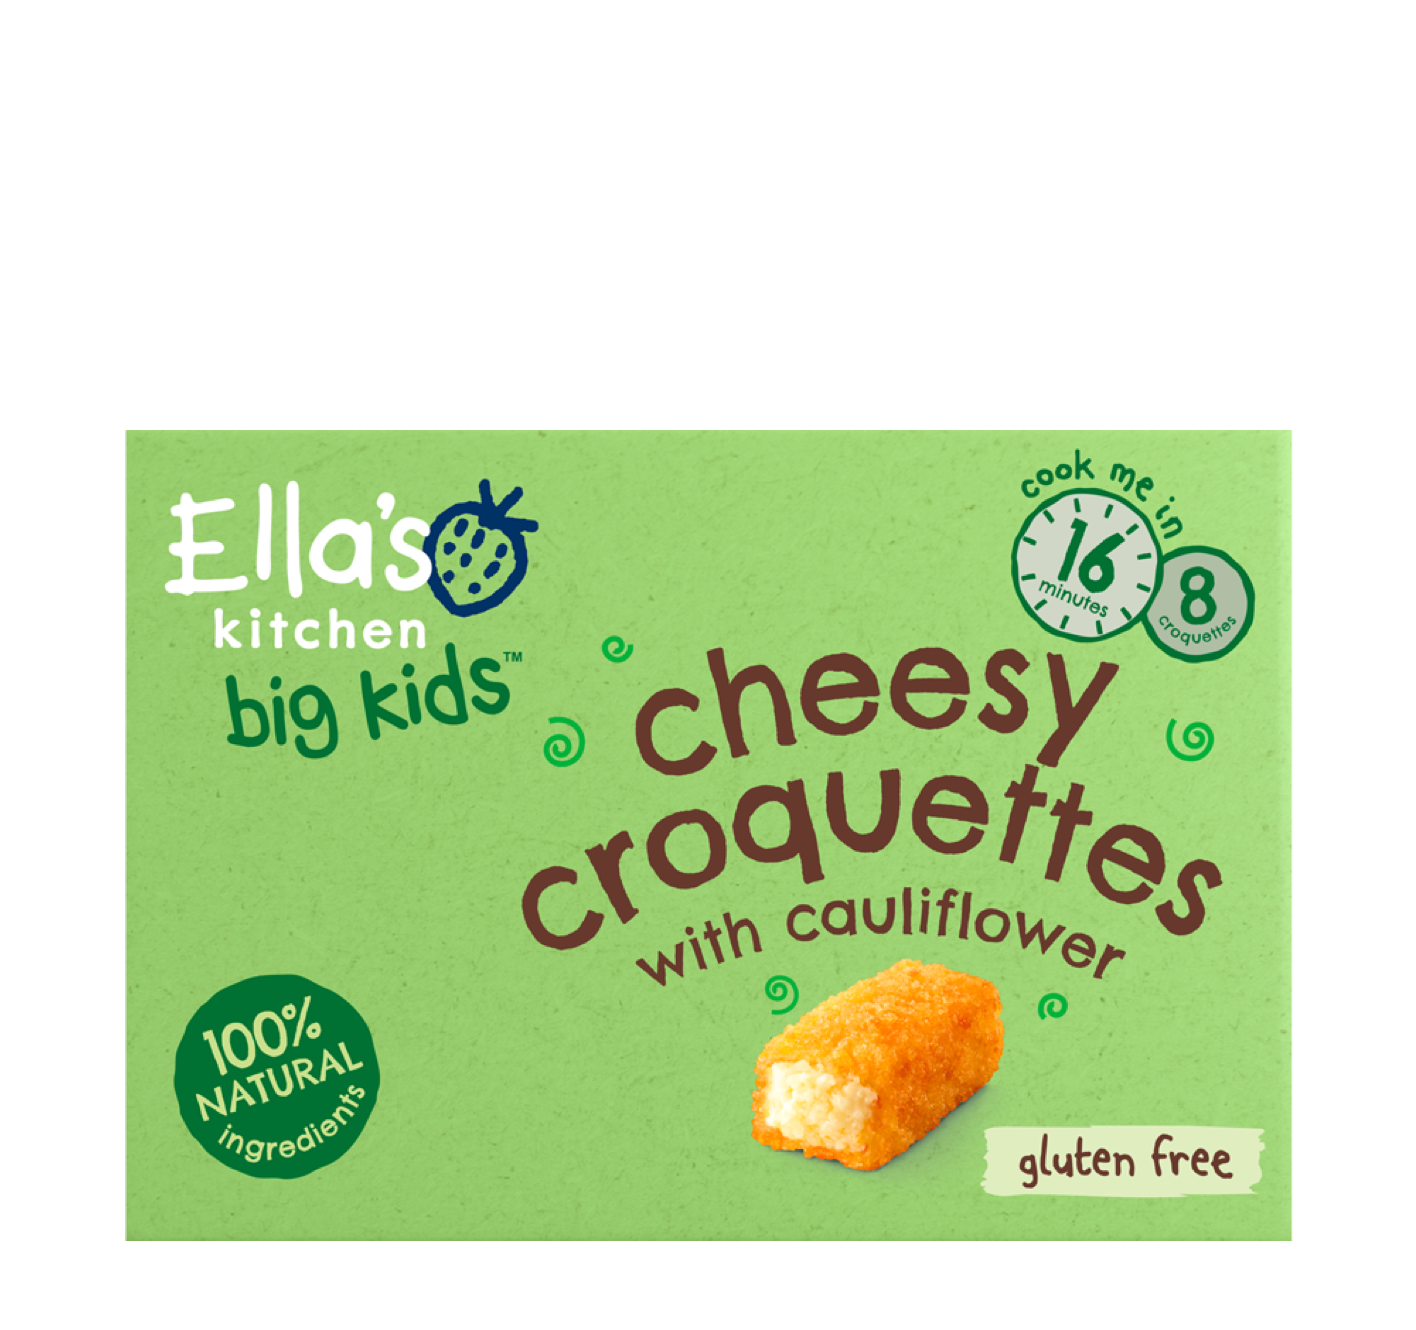 Ellas kitchen cheesy croquettes frozen Front of pack 3